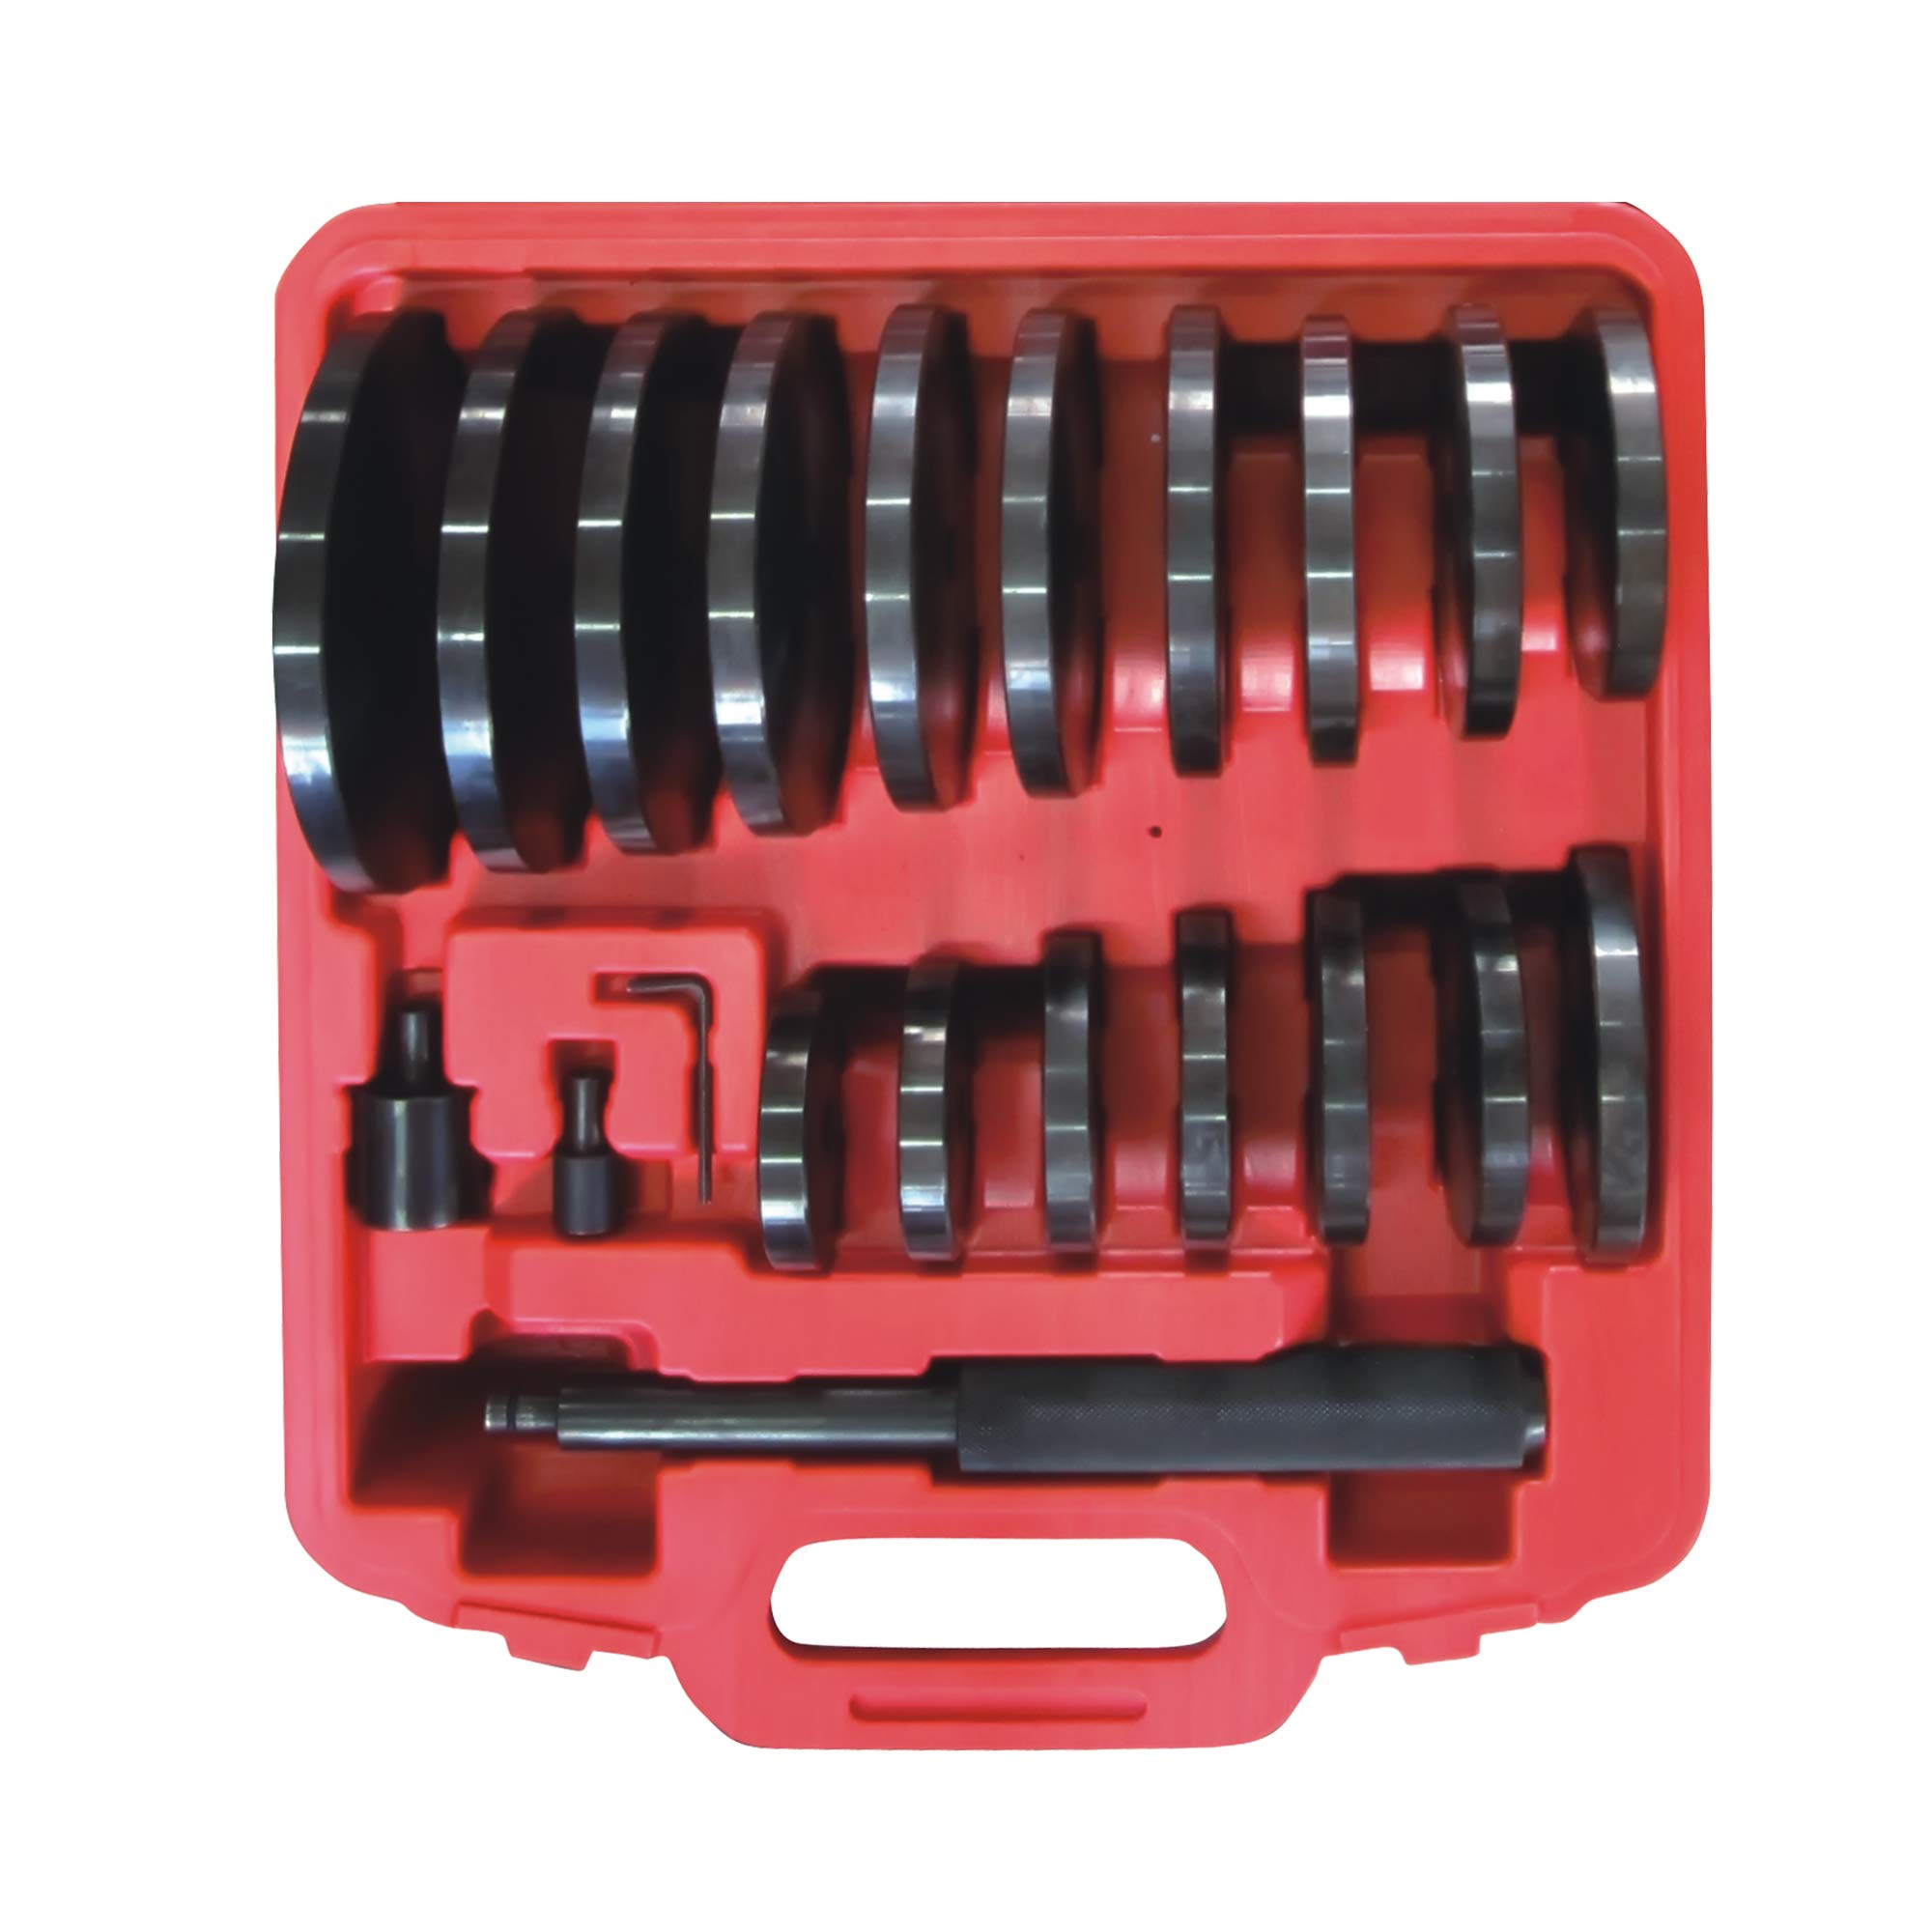 WINTOOLS 21Pcs Extra Large Custom Bush, Bearing, and Seal Driver Set Hydraulic Press by WINTOOLS (Image #1)